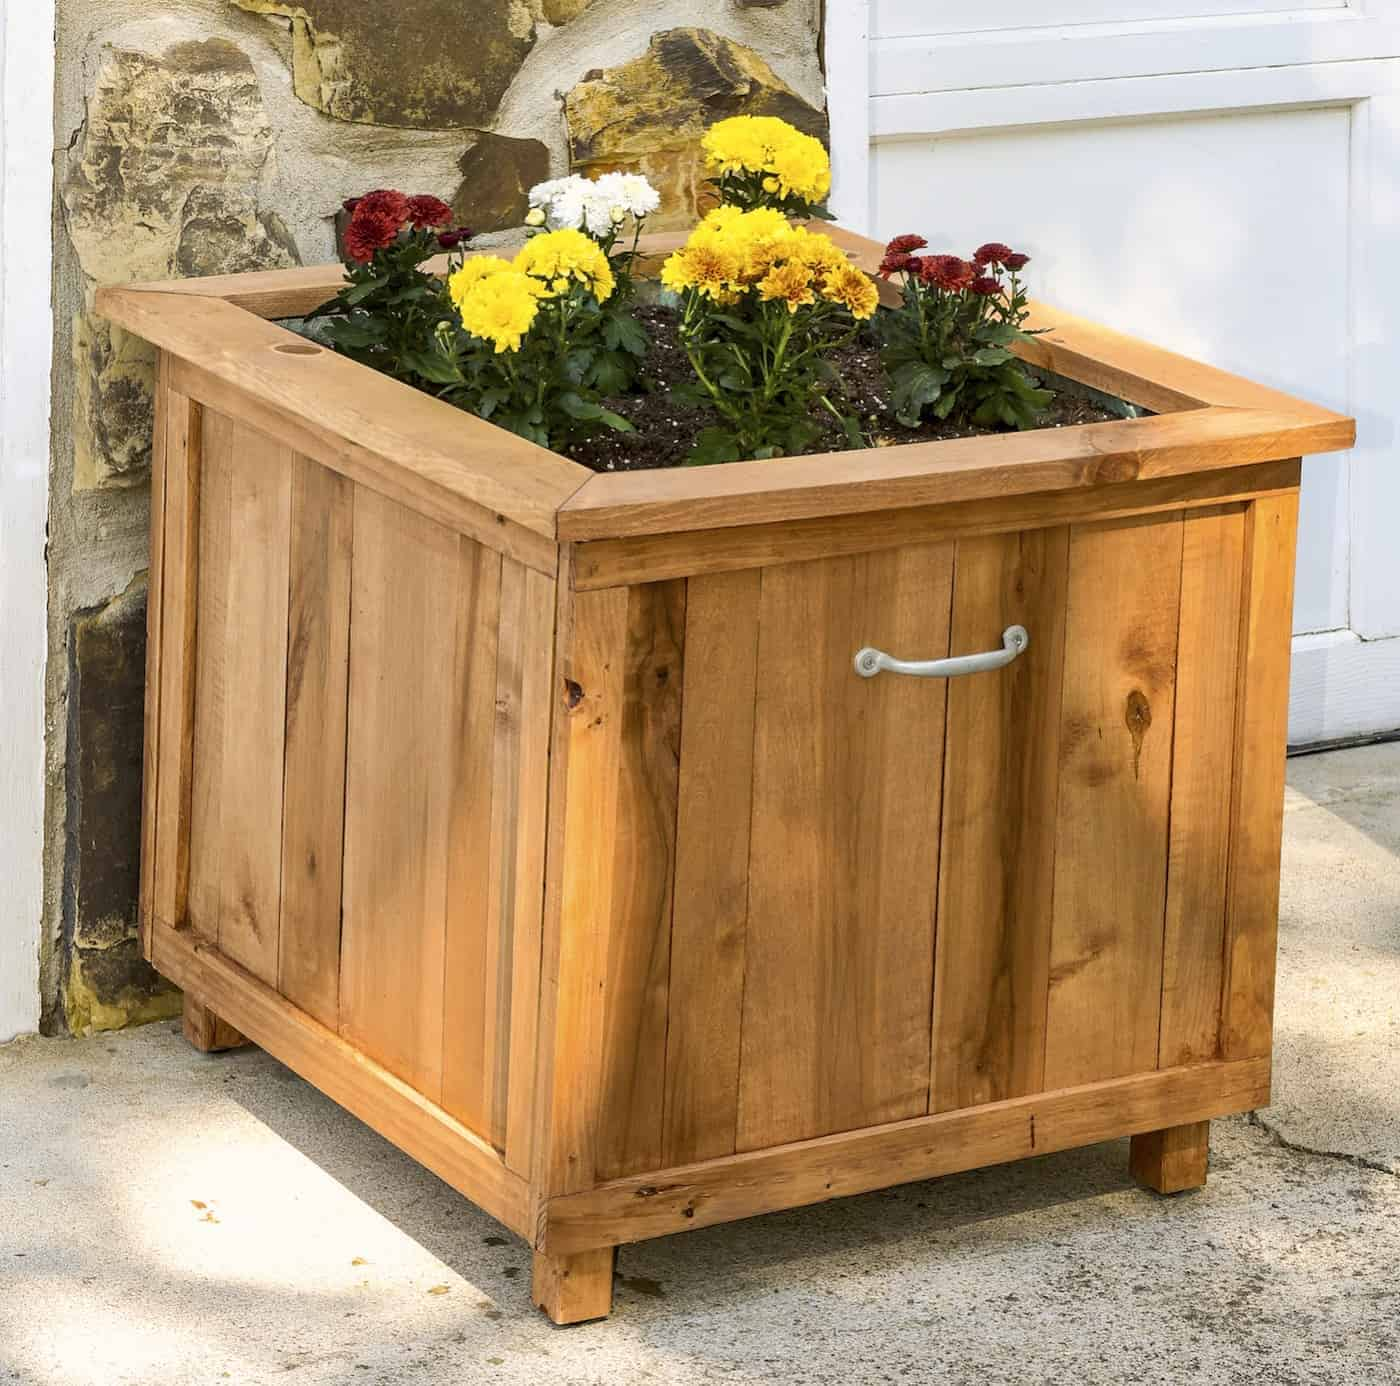 Hide your hose with this wooden storage bin and planter.